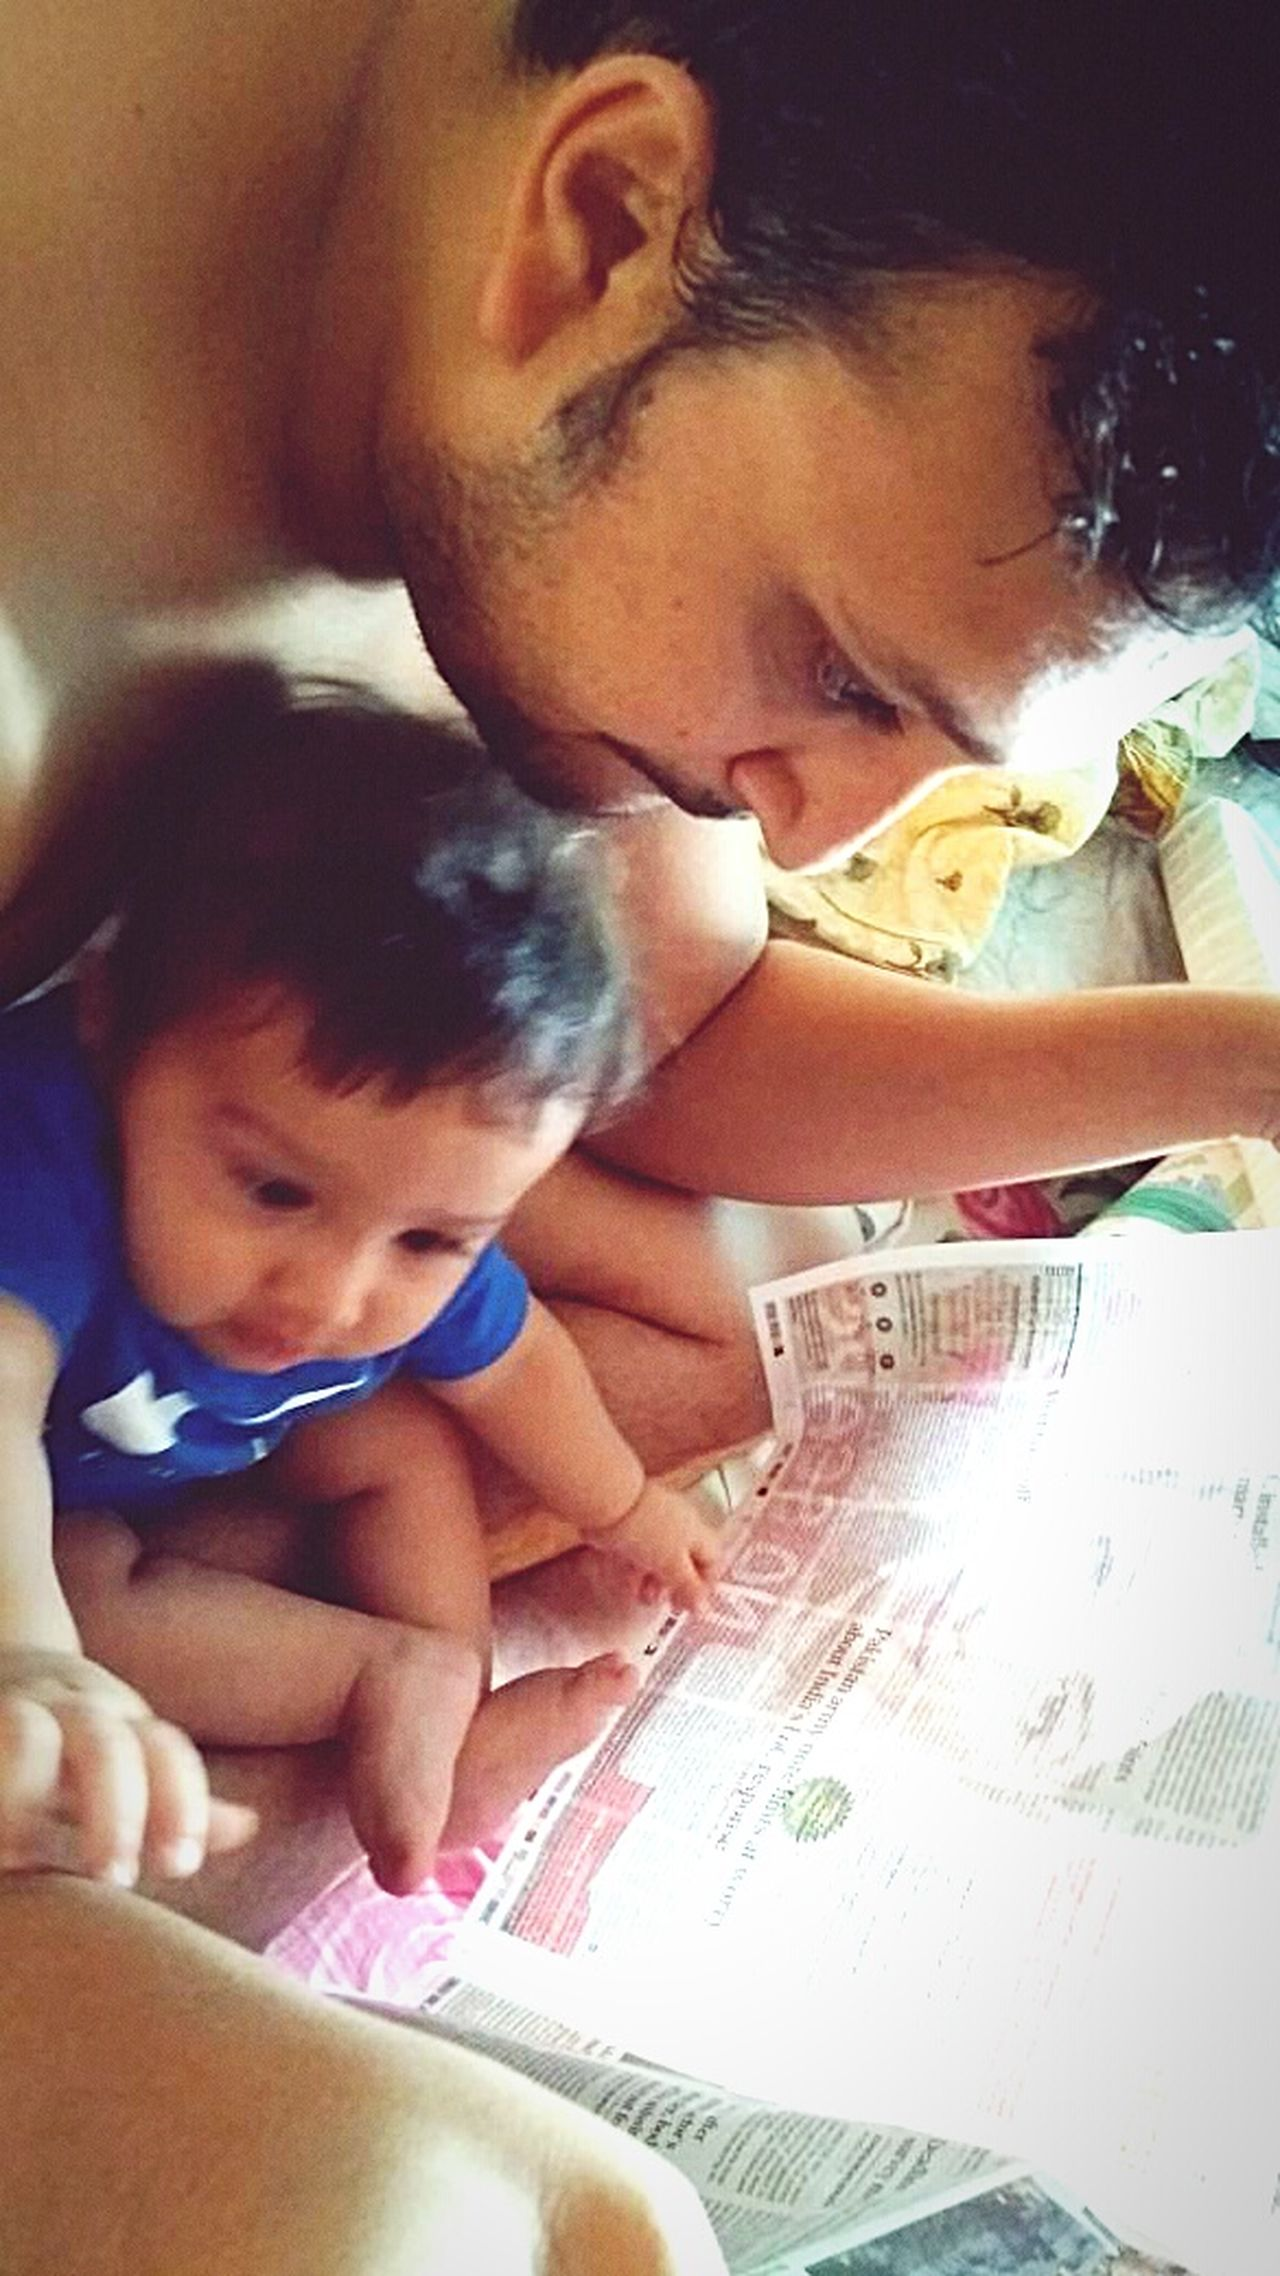 Me and my kid .. newspaper time .. Family With One Child Family Togetherness Baby Indoors  Love Adult Males  Domestic Life Child Females Smiling Childhood Lifestyles Headshot Happiness Cheerful People Newspaper Men The Portraitist - 2017 EyeEm Awards